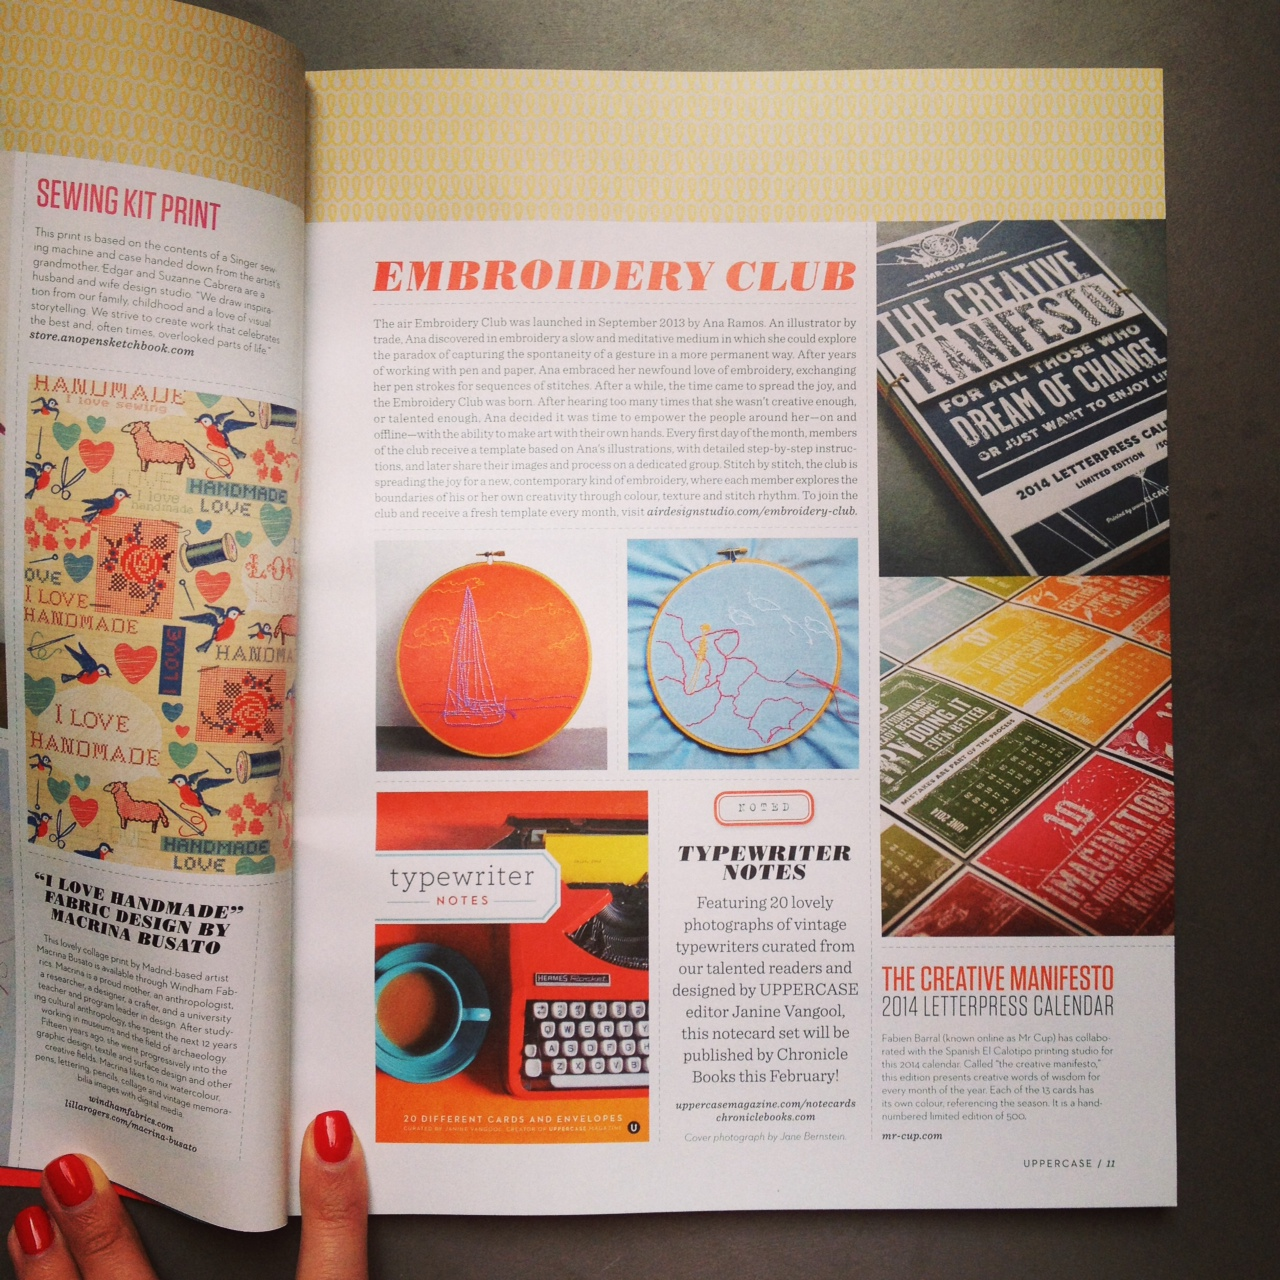 air Embroidery Club featured in Uppercase Magazine issue 20